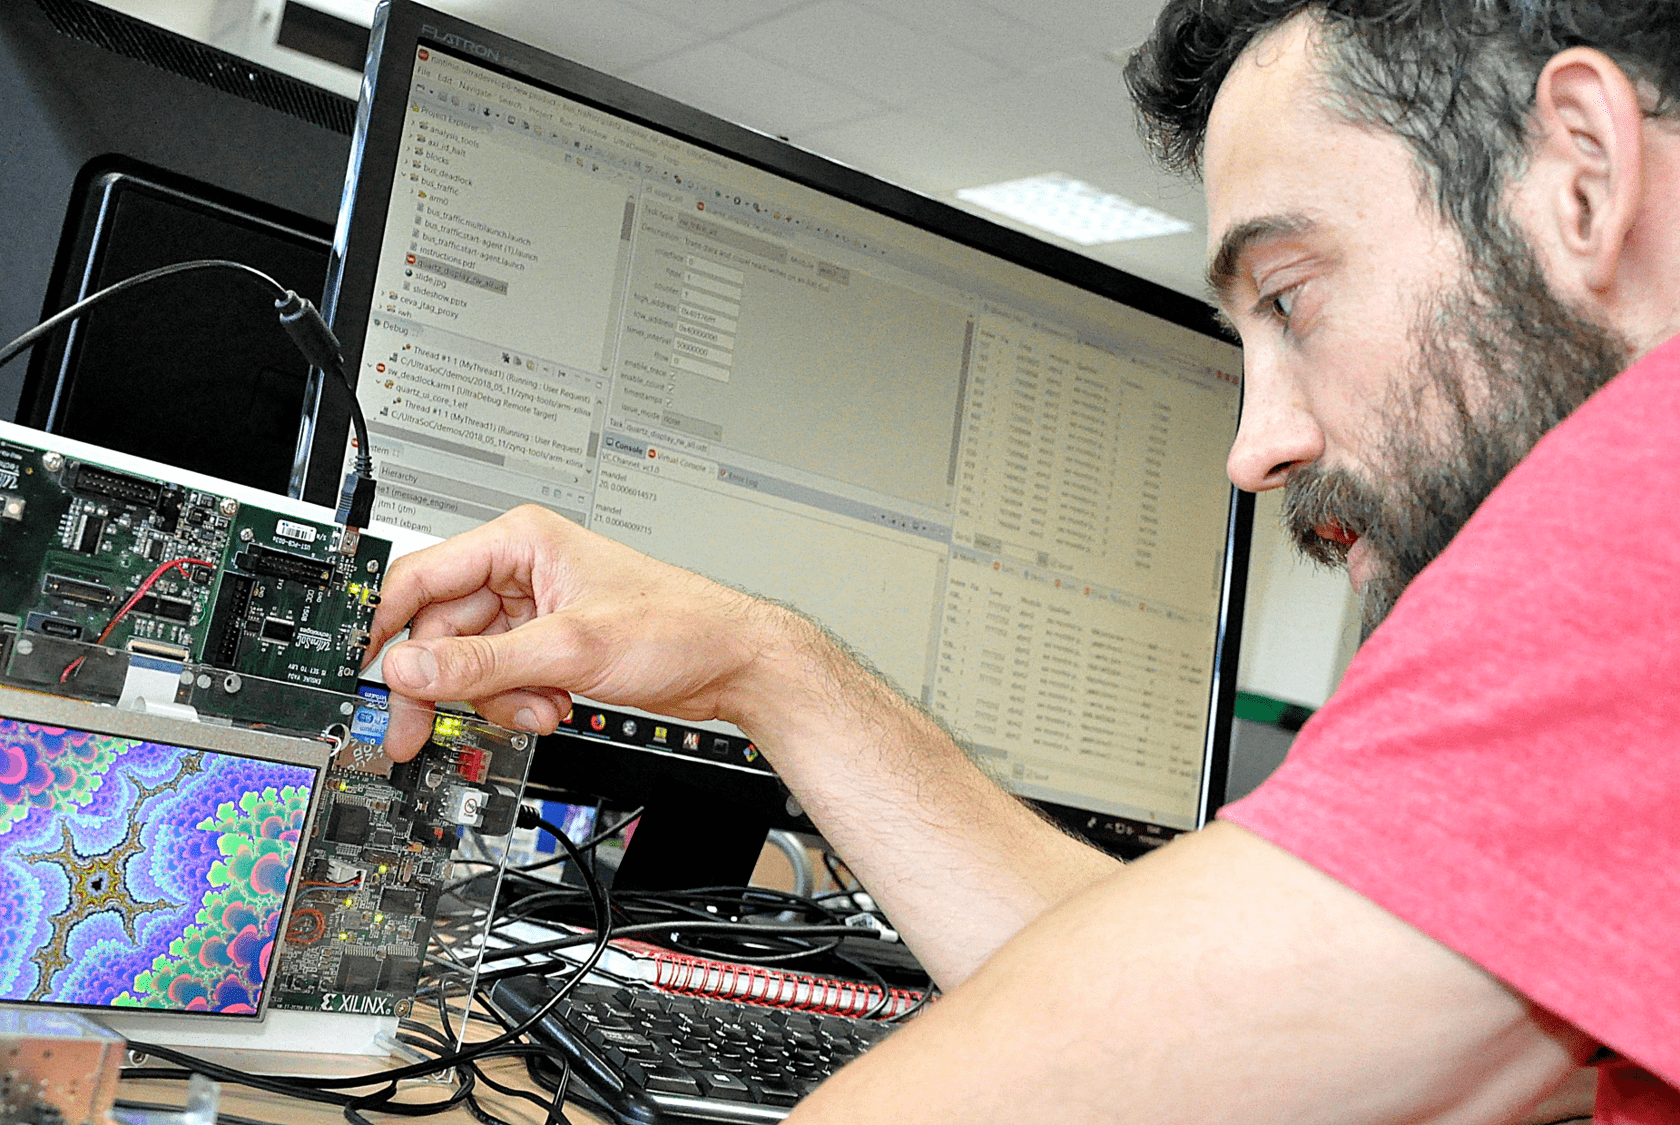 UltraDevelop 2 allows SoC designers to see real-time actionable insights in a single window. In the photo above, a demonstration board containing an Arm CPU generates a fractal pattern on the screen, while the engineer views the operation of the program via the GUI on his workstation. (Photo: UltraSoC)